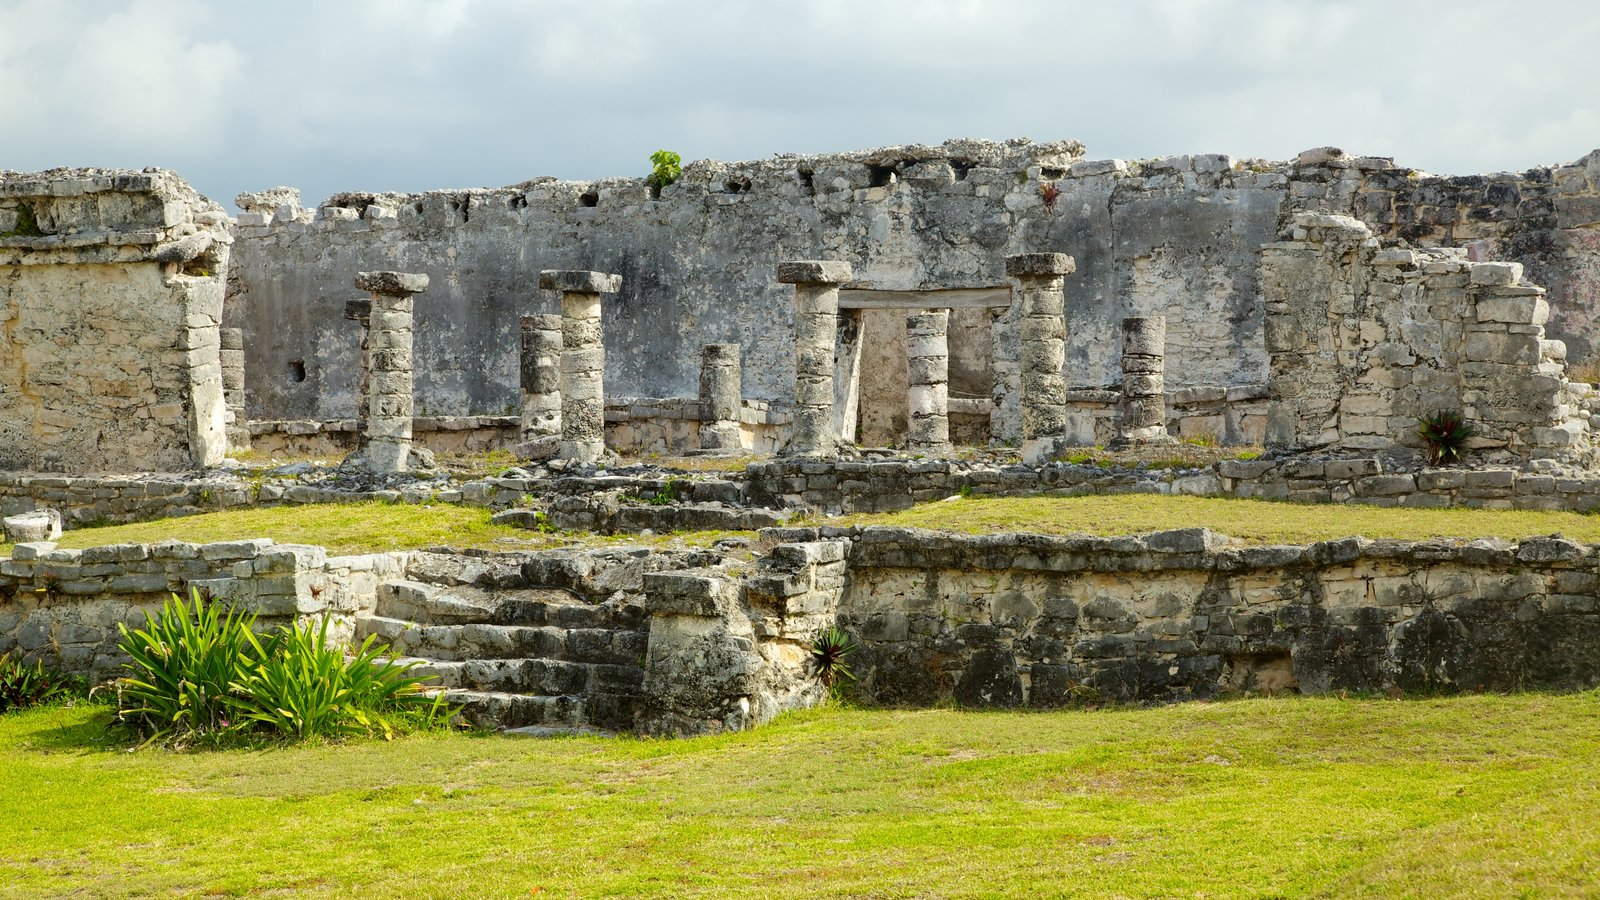 Landscape Pictures: View Images of Riviera Maya